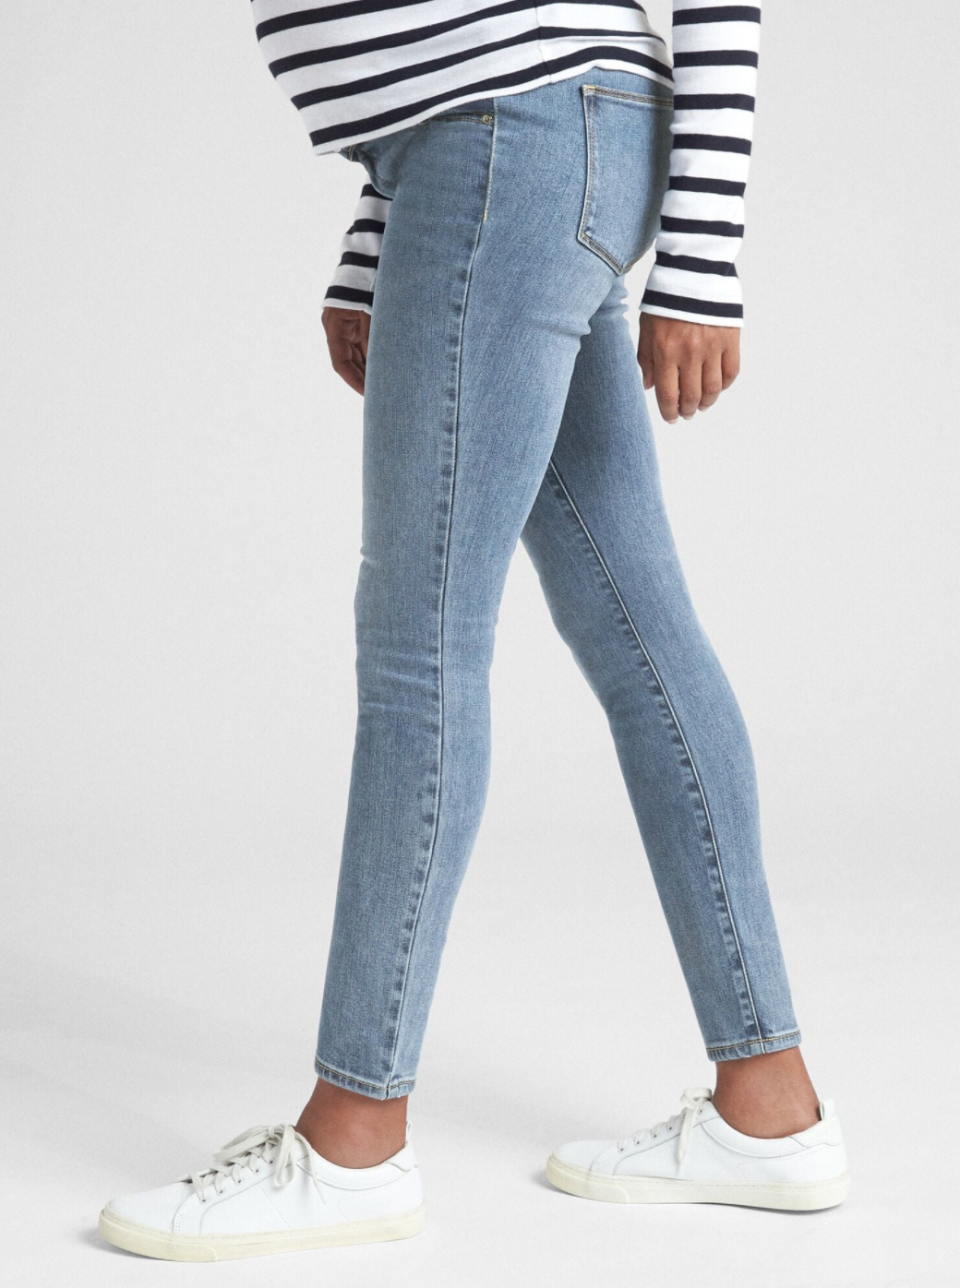 """<p>Busy folks who default to denim will find there's plenty of great options at <a href=""""https://www.gap.co.uk/gap/maternity/clothing/jeans/?nav=meganav%3AMaternity%3AClothing%3AJeans"""" rel=""""nofollow noopener"""" target=""""_blank"""" data-ylk=""""slk:GAP"""" class=""""link rapid-noclick-resp"""">GAP</a>. From <a href=""""https://www.gap.co.uk/gap/maternity-soft-wear-inset-panel-true-skinny-jeans/000369912.html?dwvar_000369912_color=000369912000&dwvar_000369912_fit=regular&cgid=1113535#start=8&nav=meganav%3AMaternity%3AClothing%3AJeans"""" rel=""""nofollow noopener"""" target=""""_blank"""" data-ylk=""""slk:true blue skinnies"""" class=""""link rapid-noclick-resp"""">true blue skinnies</a> to trendy <a href=""""https://www.gap.co.uk/gap/maternity-soft-wear-full-panel-true-skinny-jeans-in-distressed/000369710.html?dwvar_000369710_color=000369710000&dwvar_000369710_fit=regular&cgid=89717#start=1&nav=meganav%3AMaternity%3AClothing%3AJeans"""" rel=""""nofollow noopener"""" target=""""_blank"""" data-ylk=""""slk:distressed maternity jeans"""" class=""""link rapid-noclick-resp"""">distressed maternity jeans</a>, their soft stretch denim is engineered with a high waist and everyday comfort in mind. Petite? Find cool cropped maternity styles here too.</p><p>Oh, and their great <a href=""""https://www.gap.co.uk/gap/maternity/clothing/activewear/?nav=meganav%3AMaternity%3AClothing%3AActivewear"""" rel=""""nofollow noopener"""" target=""""_blank"""" data-ylk=""""slk:maternity activewear"""" class=""""link rapid-noclick-resp"""">maternity activewear</a> is really worth a splurge - throw some in your basket with these <a href=""""https://www.gap.co.uk/gap/maternity-inset-panel-true-skinny-camo-jeans-with-washwell-/000618799.html?dwvar_000618799_color=000618799000&dwvar_000618799_fit=regular&cgid=1030215#start=4&nav=meganav%3AMaternity%3AClothing%3AJeans"""" rel=""""nofollow noopener"""" target=""""_blank"""" data-ylk=""""slk:camo print skinnies"""" class=""""link rapid-noclick-resp"""">camo print skinnies</a>.</p><p><a class=""""link rapid-noclick-resp"""" href=""""https://go.redirectingat.com?id=127X1599956&url=https%3A%2F%2F"""